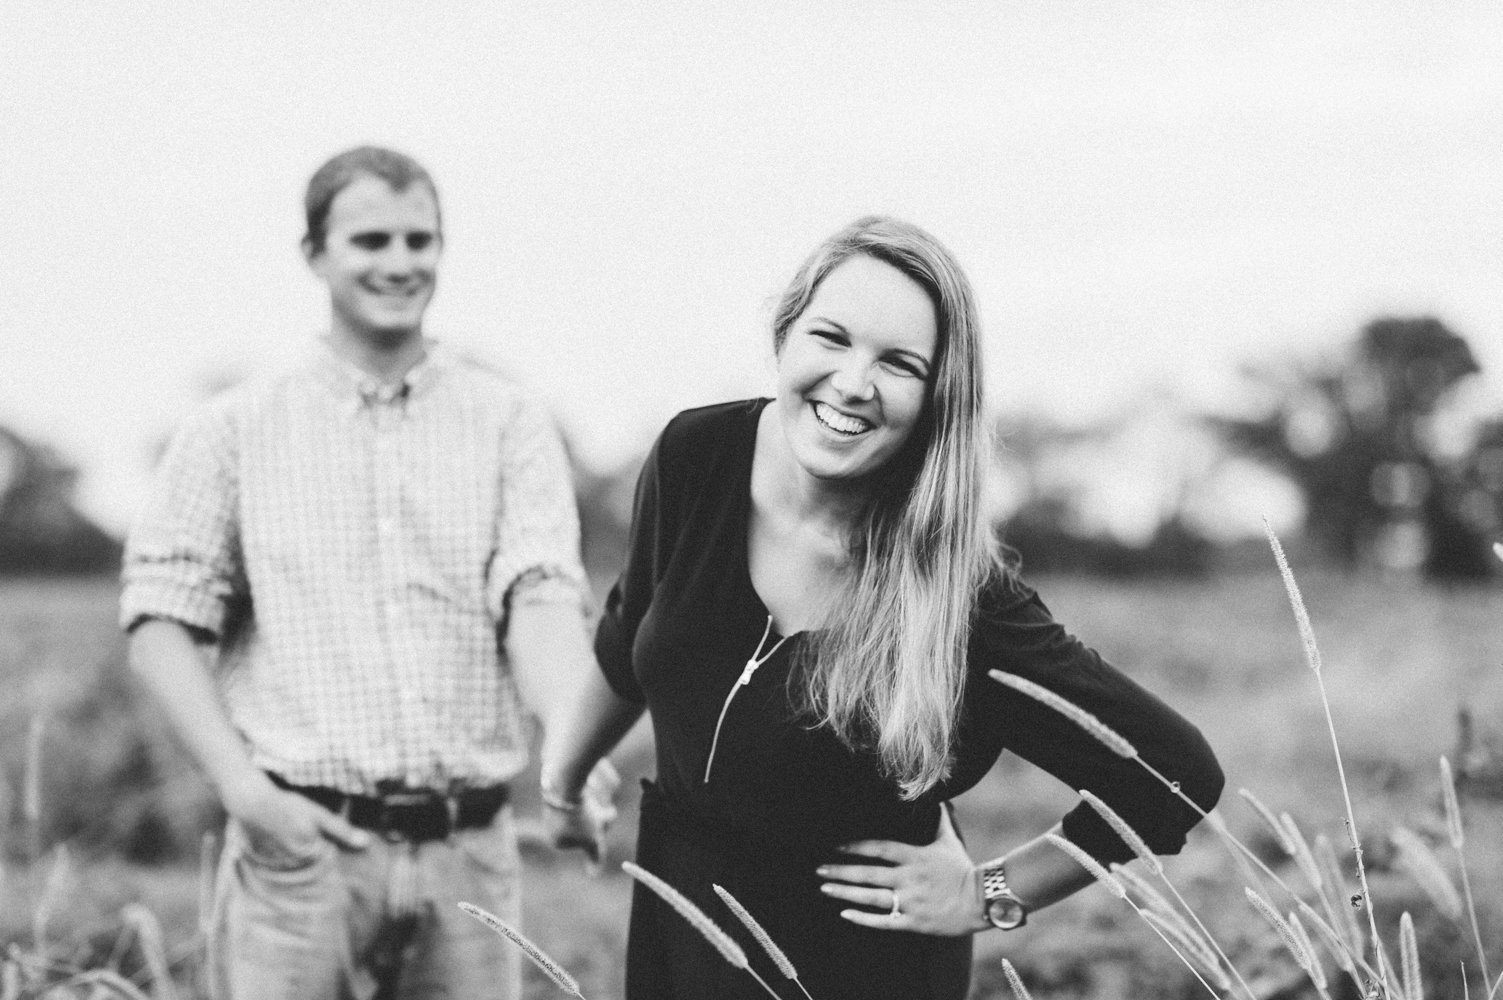 engagement-portraits-christina-forbes-photography-57